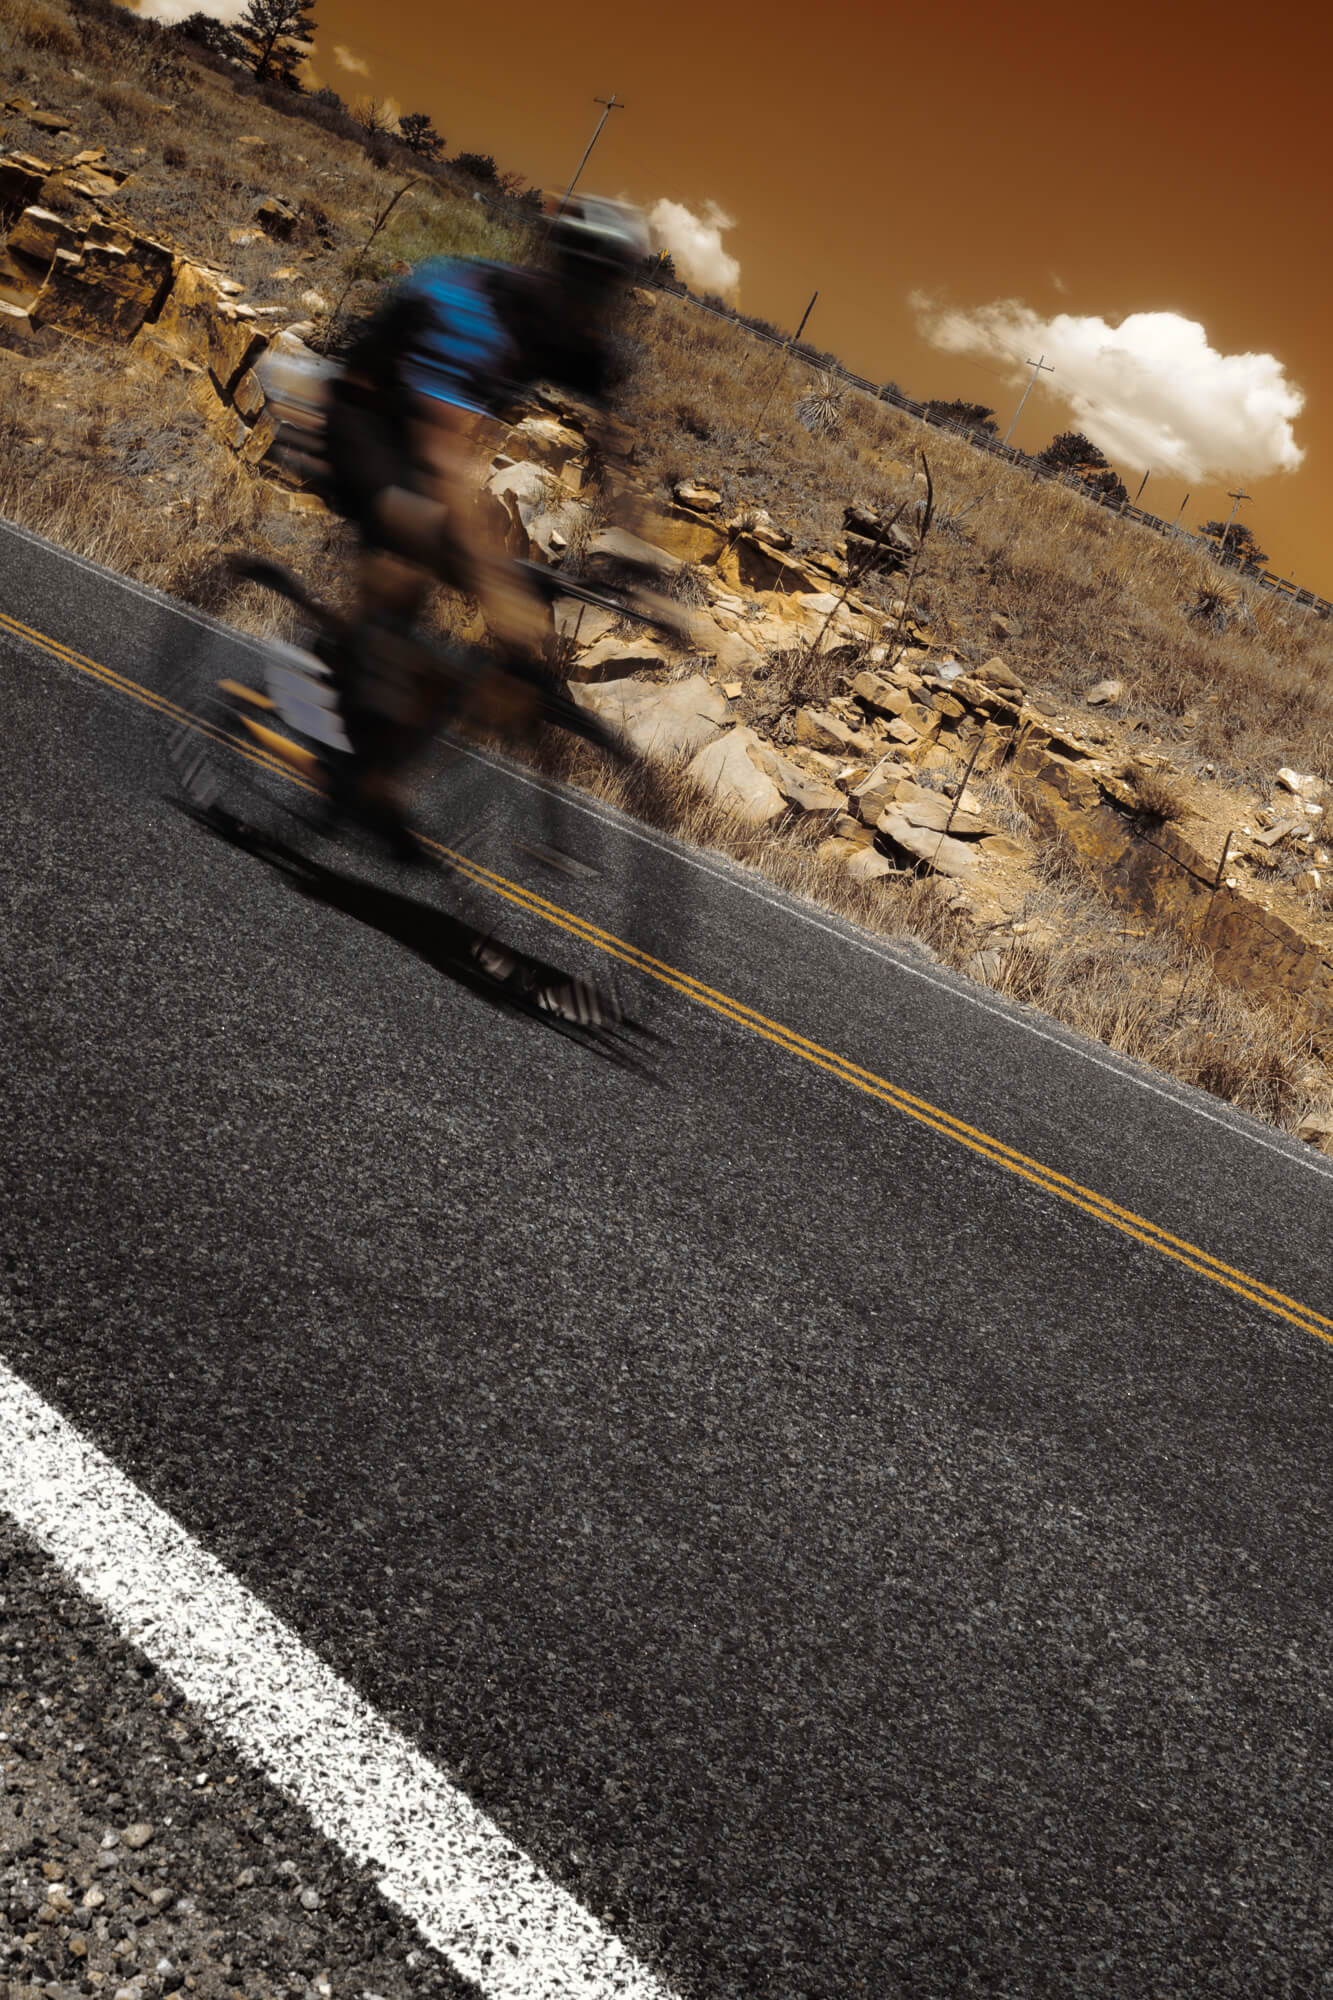 Artistic edit of a cyclist in motion photographed on the Intentionally Lost cycling tour and photography workshop